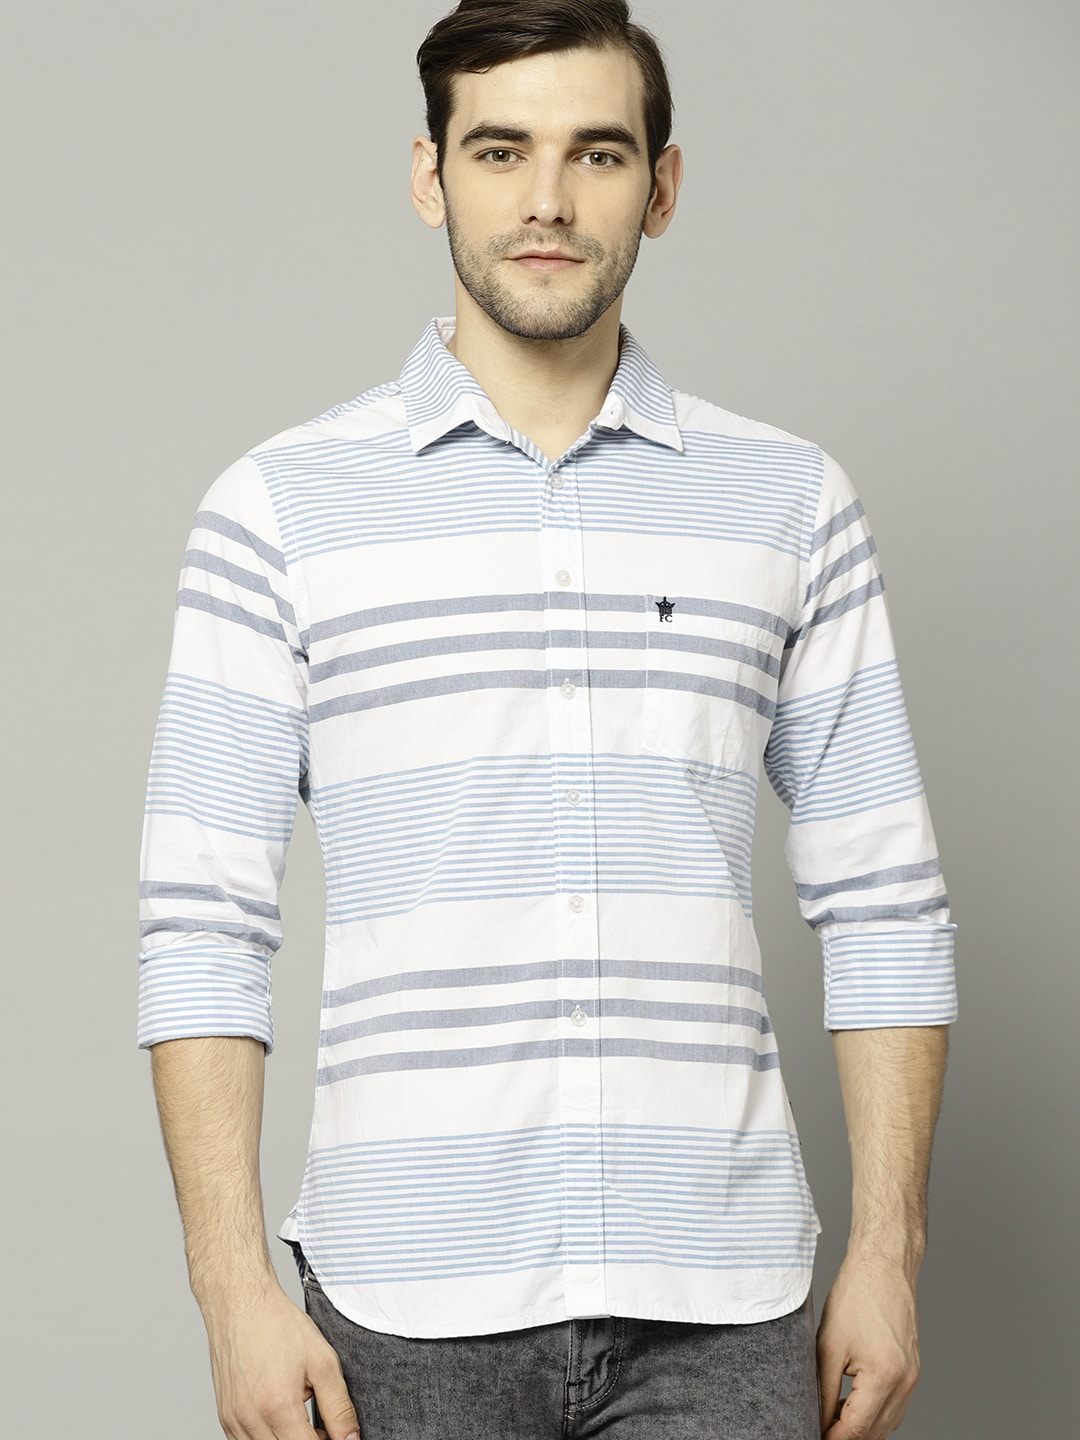 adcc341e721dc Casual Shirts for Men - Buy Men Casual Shirt Online in India